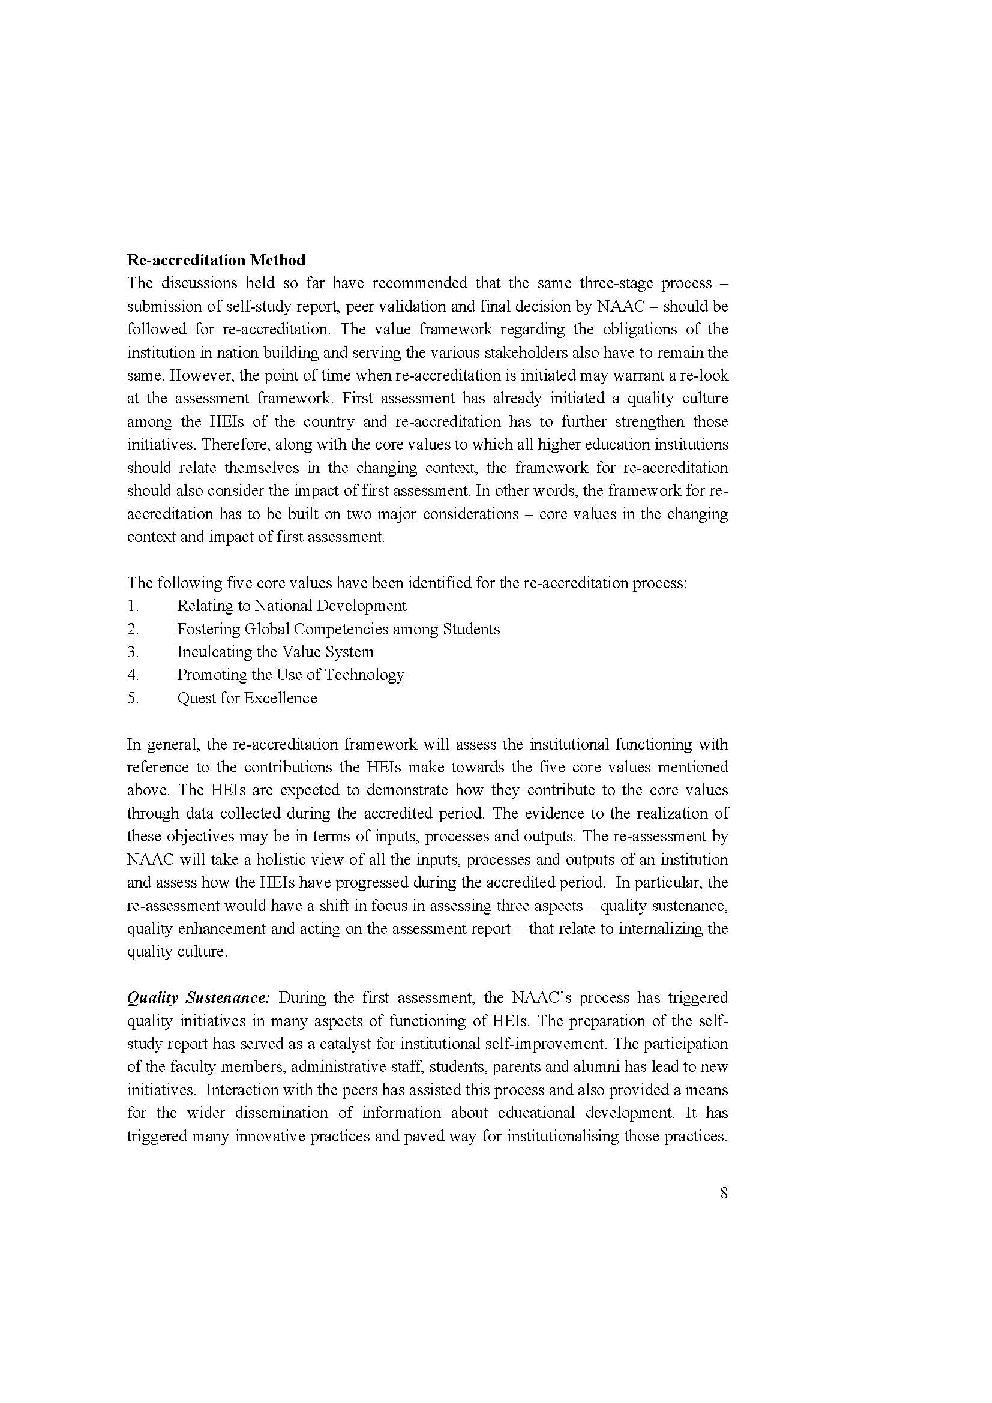 thesis on quality assurance in higher education International trends in higher education 2015 1 i nternationalisation is of growing significance worldwide, with economic,  l b) improving the quality of higher.